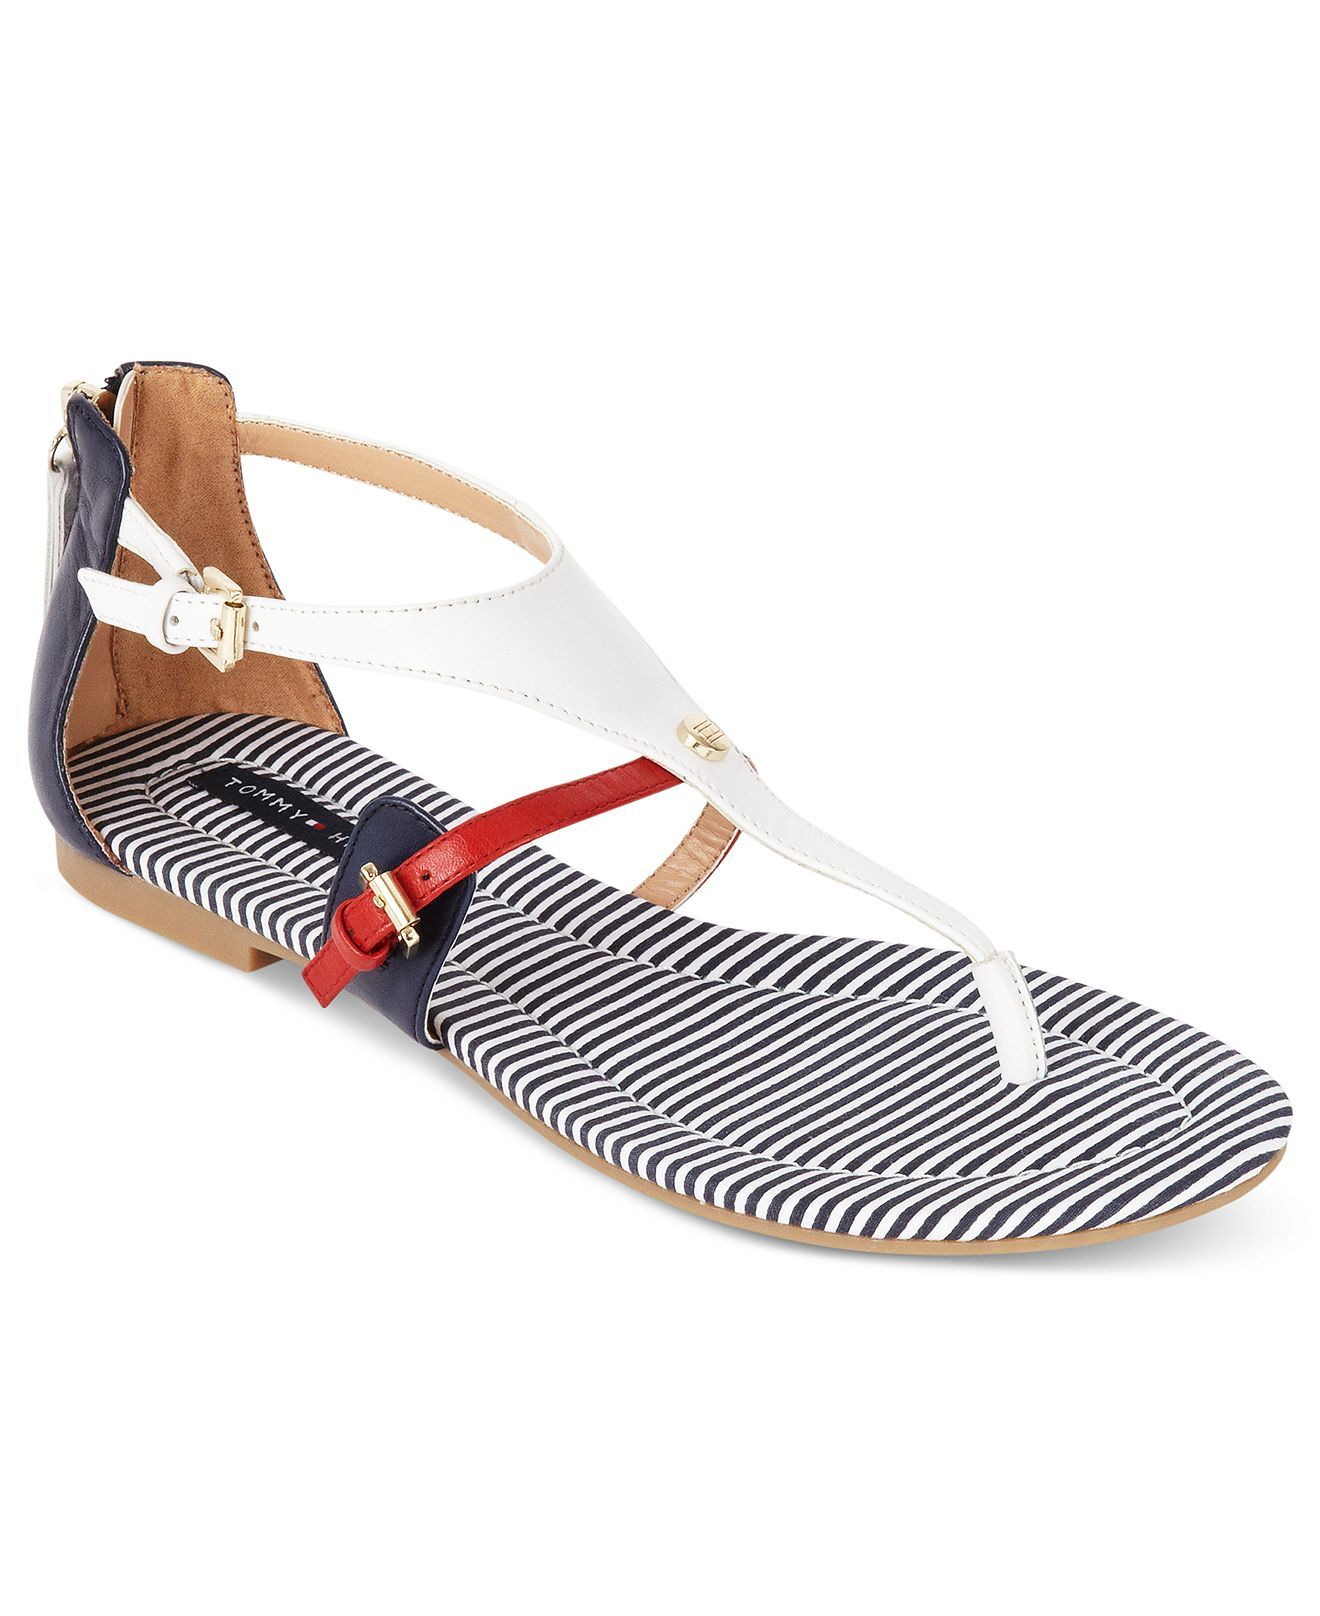 0fe119148069 Tommy Hilfiger Shoes